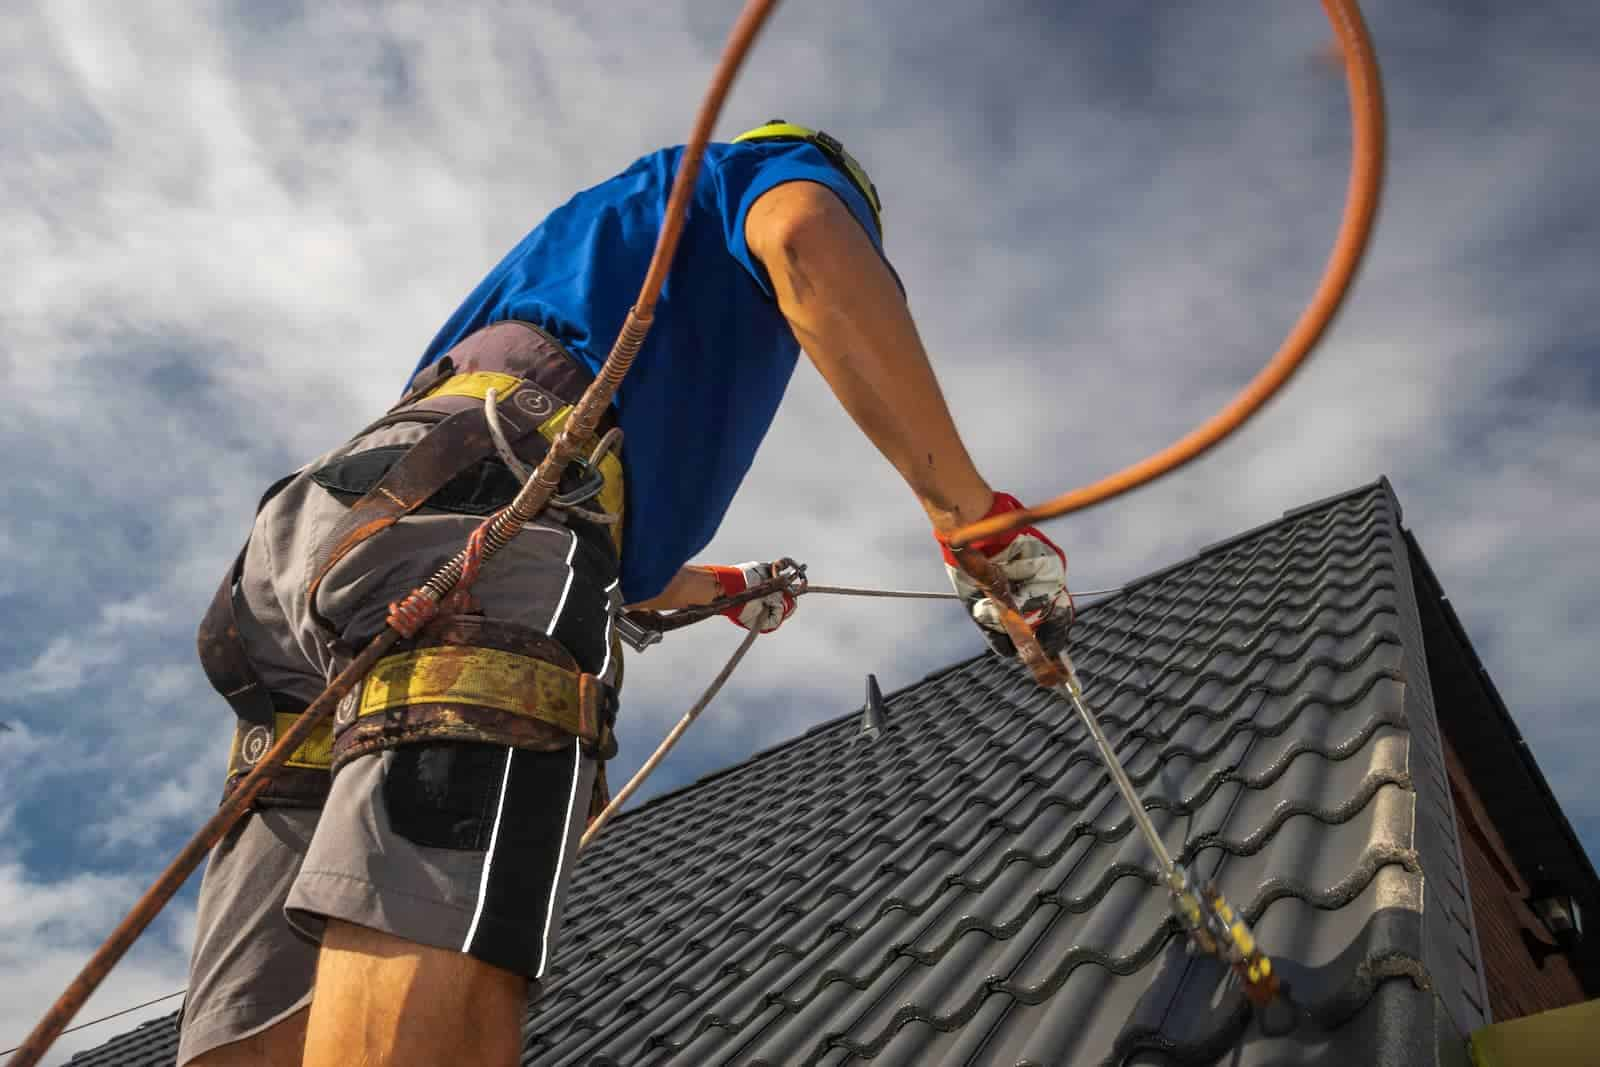 Roofing Contractor Working on Tile Roof